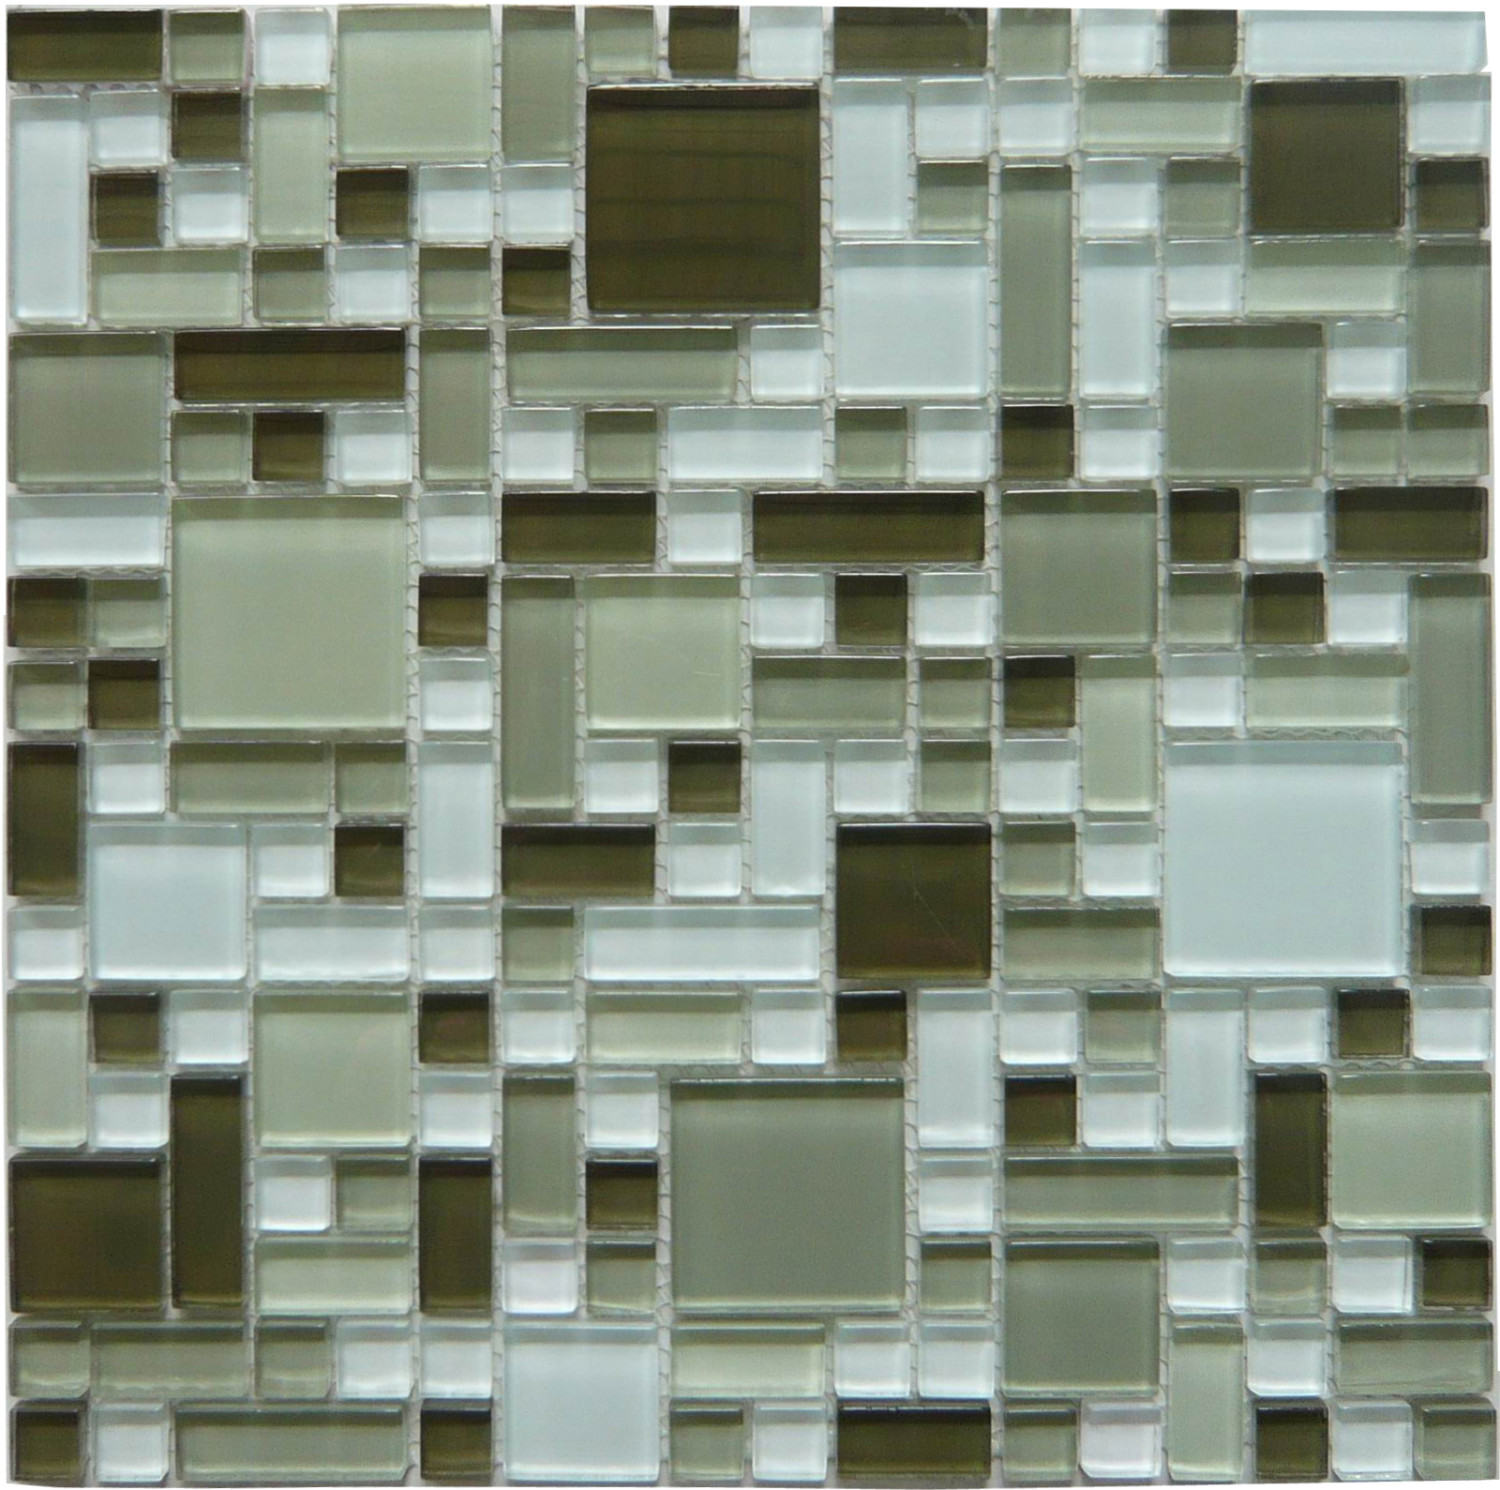 Olive Oil GP04 Green Puzzle Glass Mosaic Tile